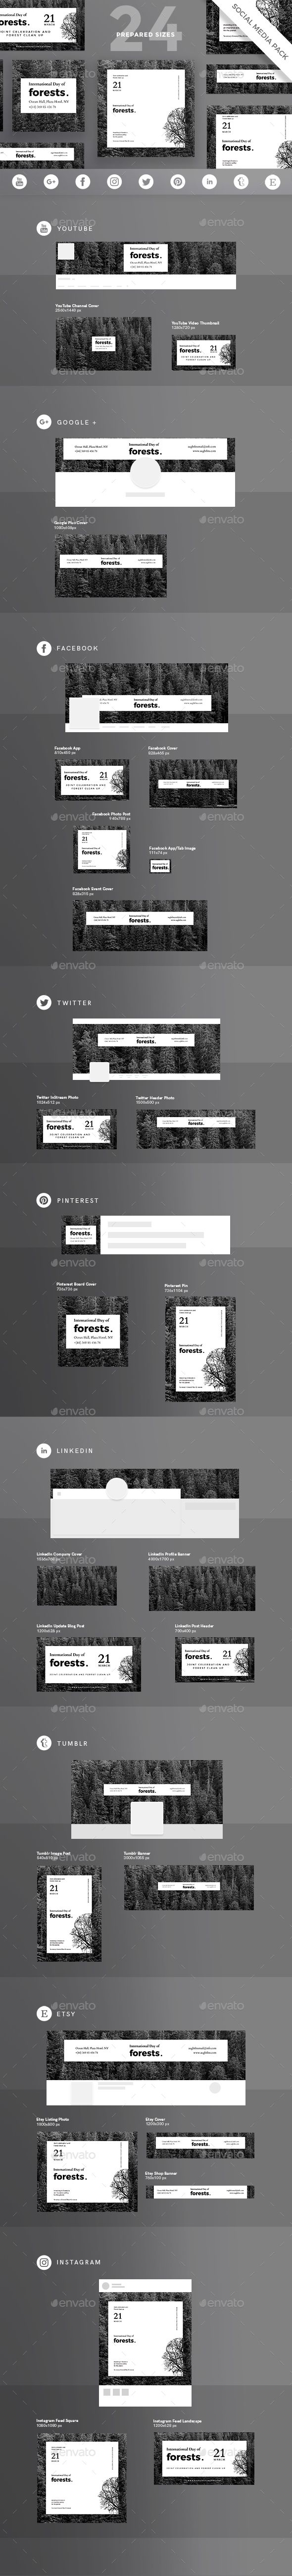 #Forests Day #Social #Media Pack - Miscellaneous Social Media